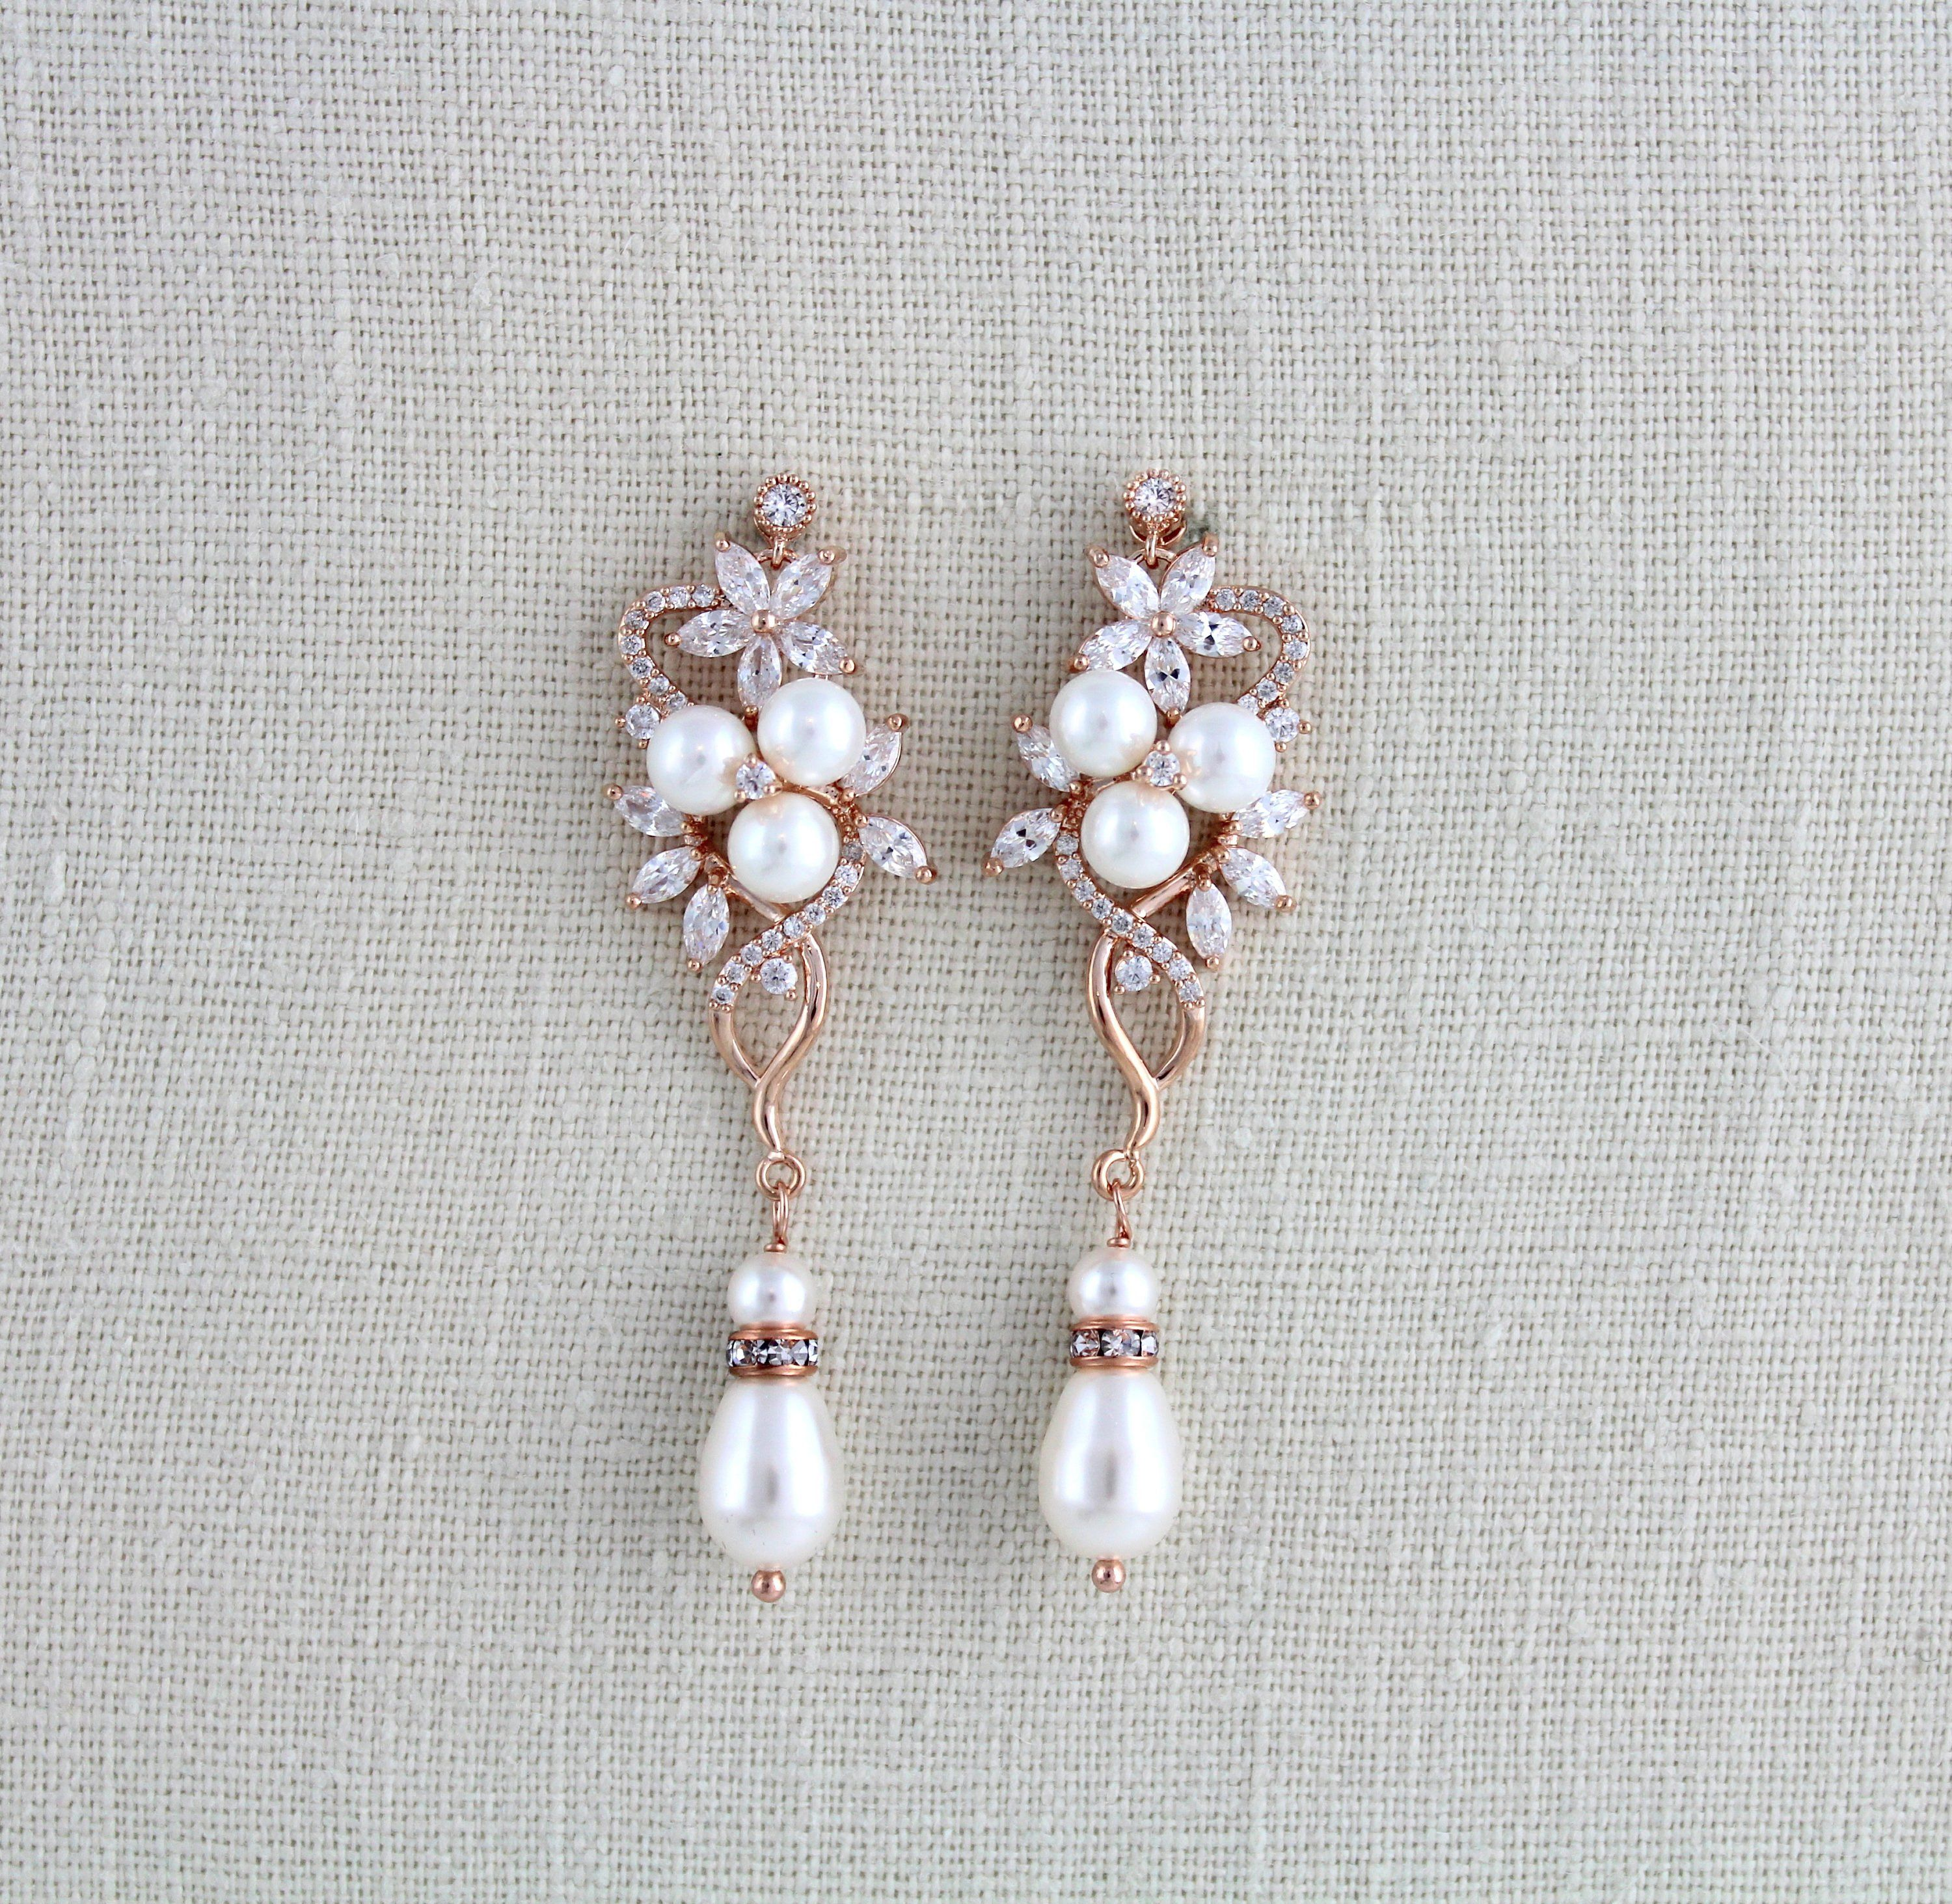 d8be55ef6 Rose Gold Bridal earrings, Pearl Wedding earrings, Long earrings, Bridal  jewelry, CZ earrings, Dangle earrings, Bridesmaid earrings, MIA by  treasures570 on ...